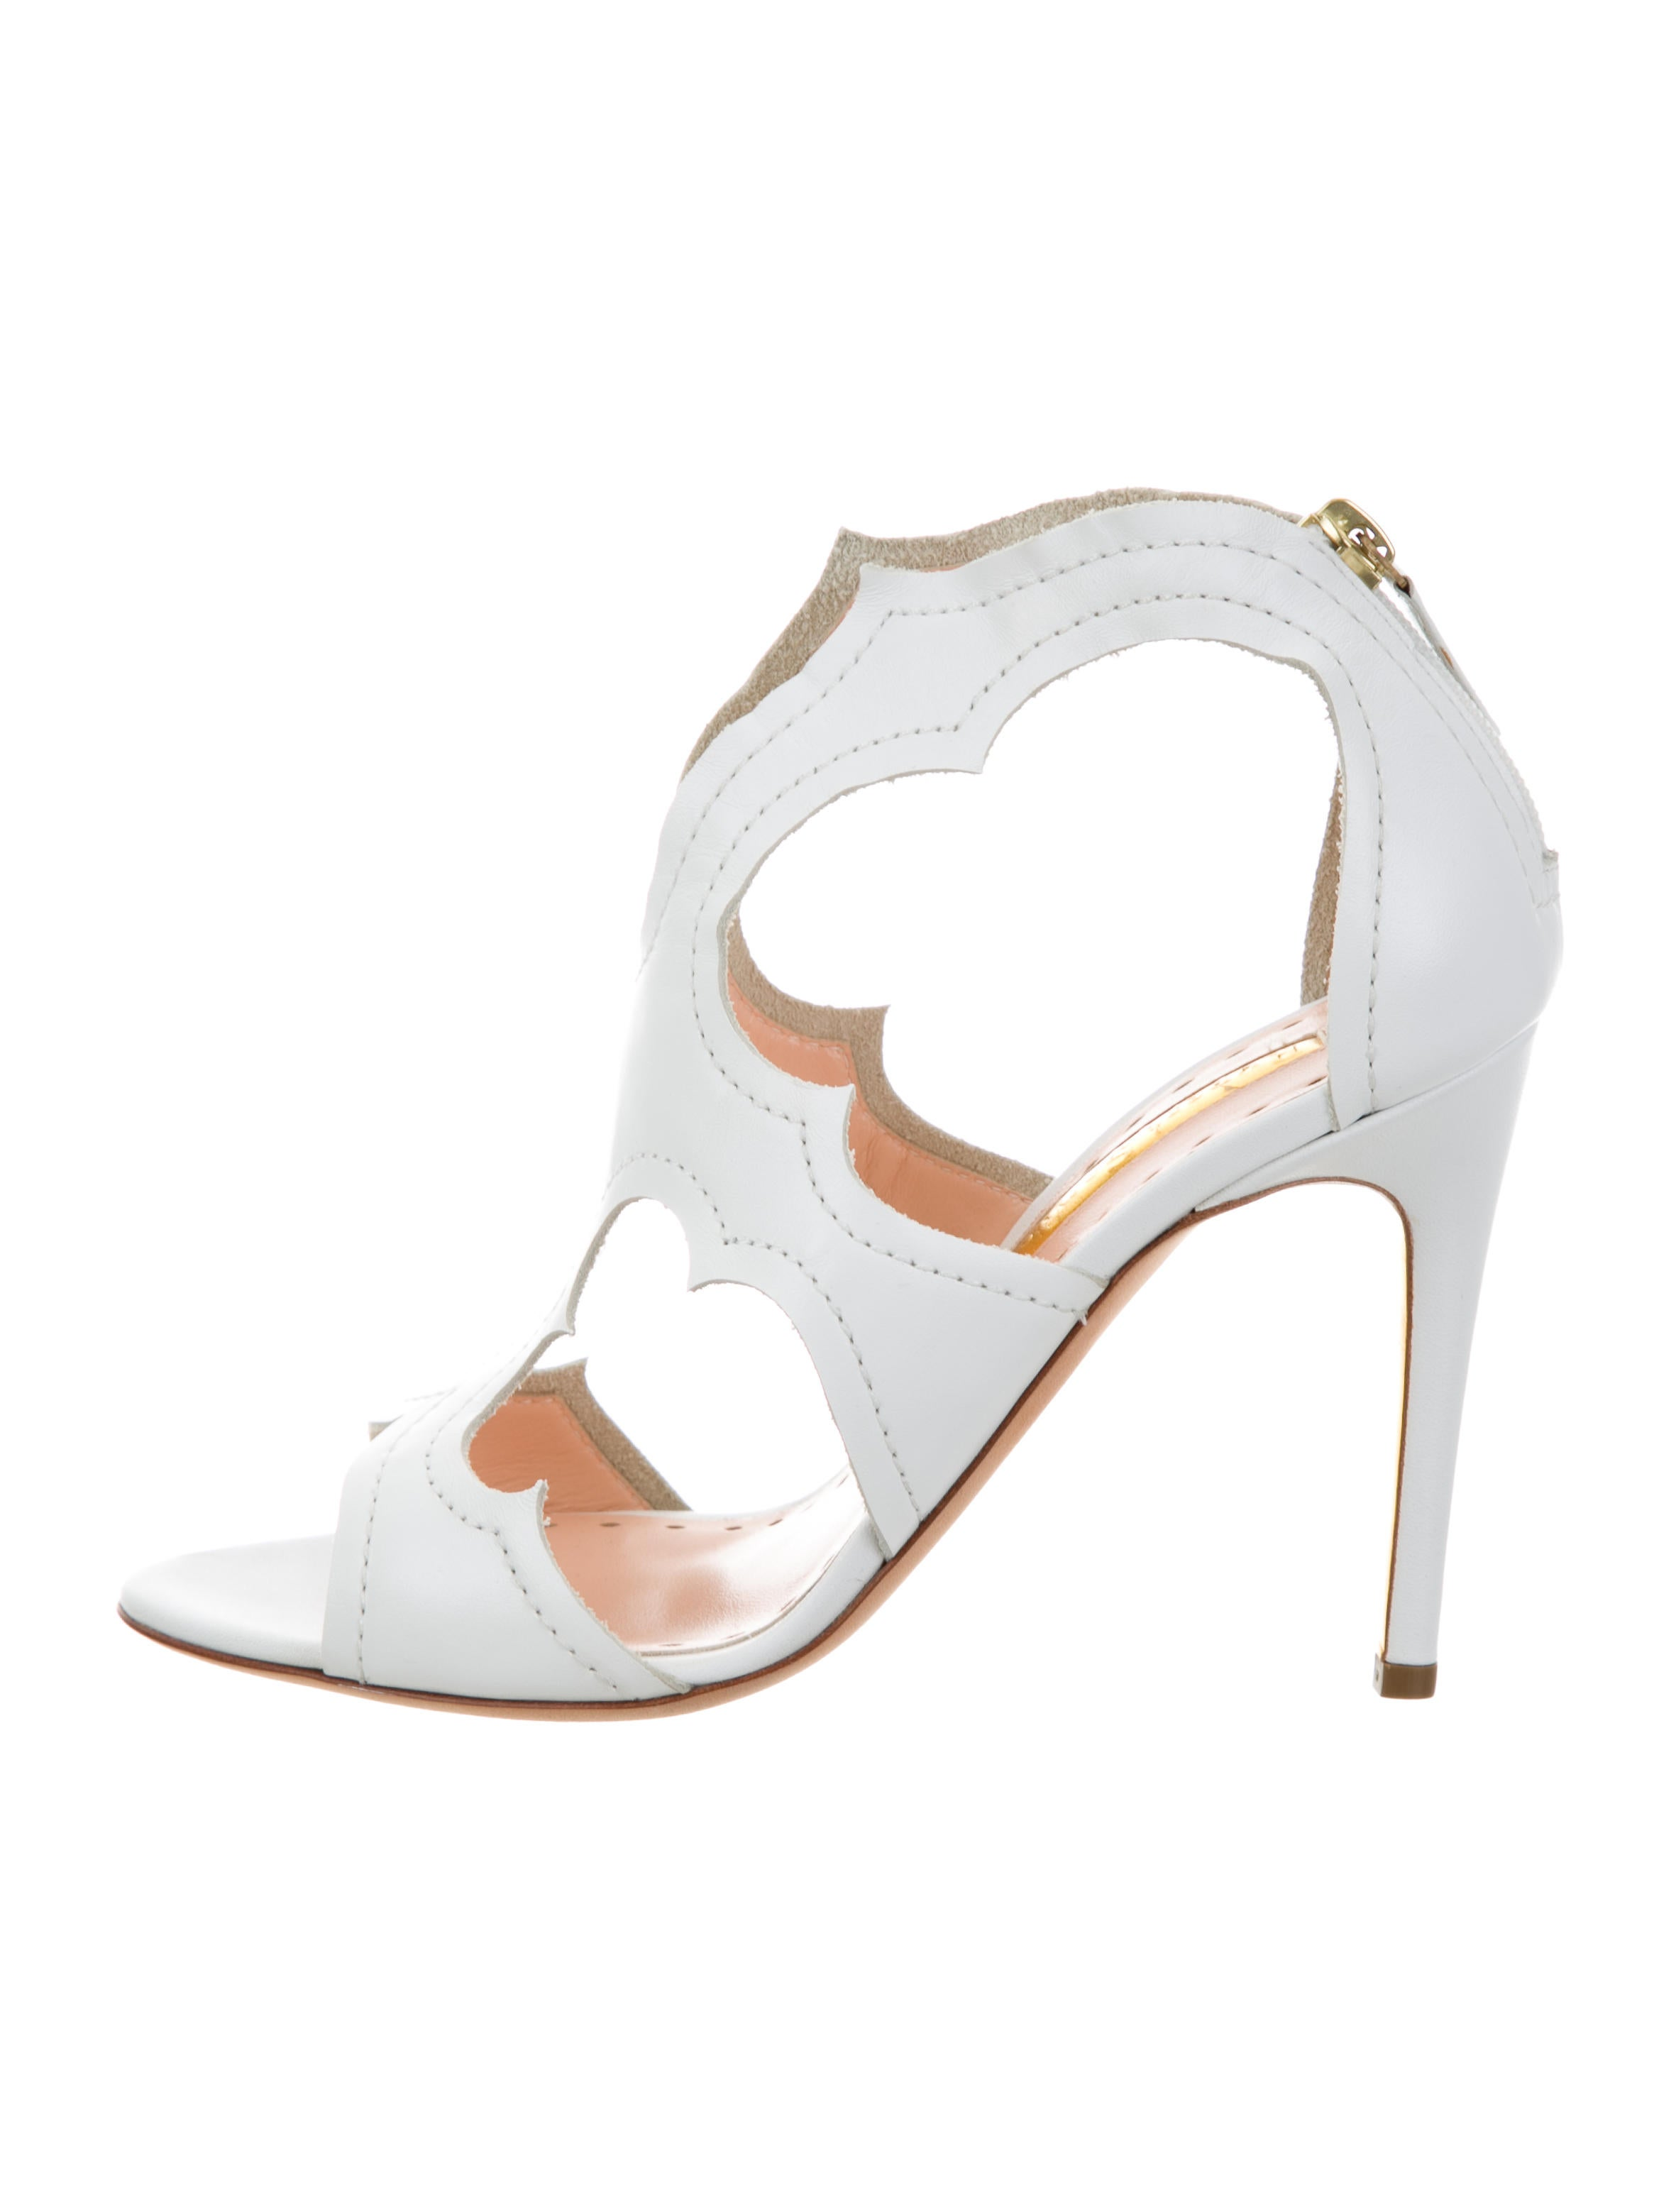 Rupert Sanderson Leather Cutout Sandals w/ Tags outlet looking for clearance amazing price outlet locations cheap price buy cheap 100% authentic big discount for sale lw8da